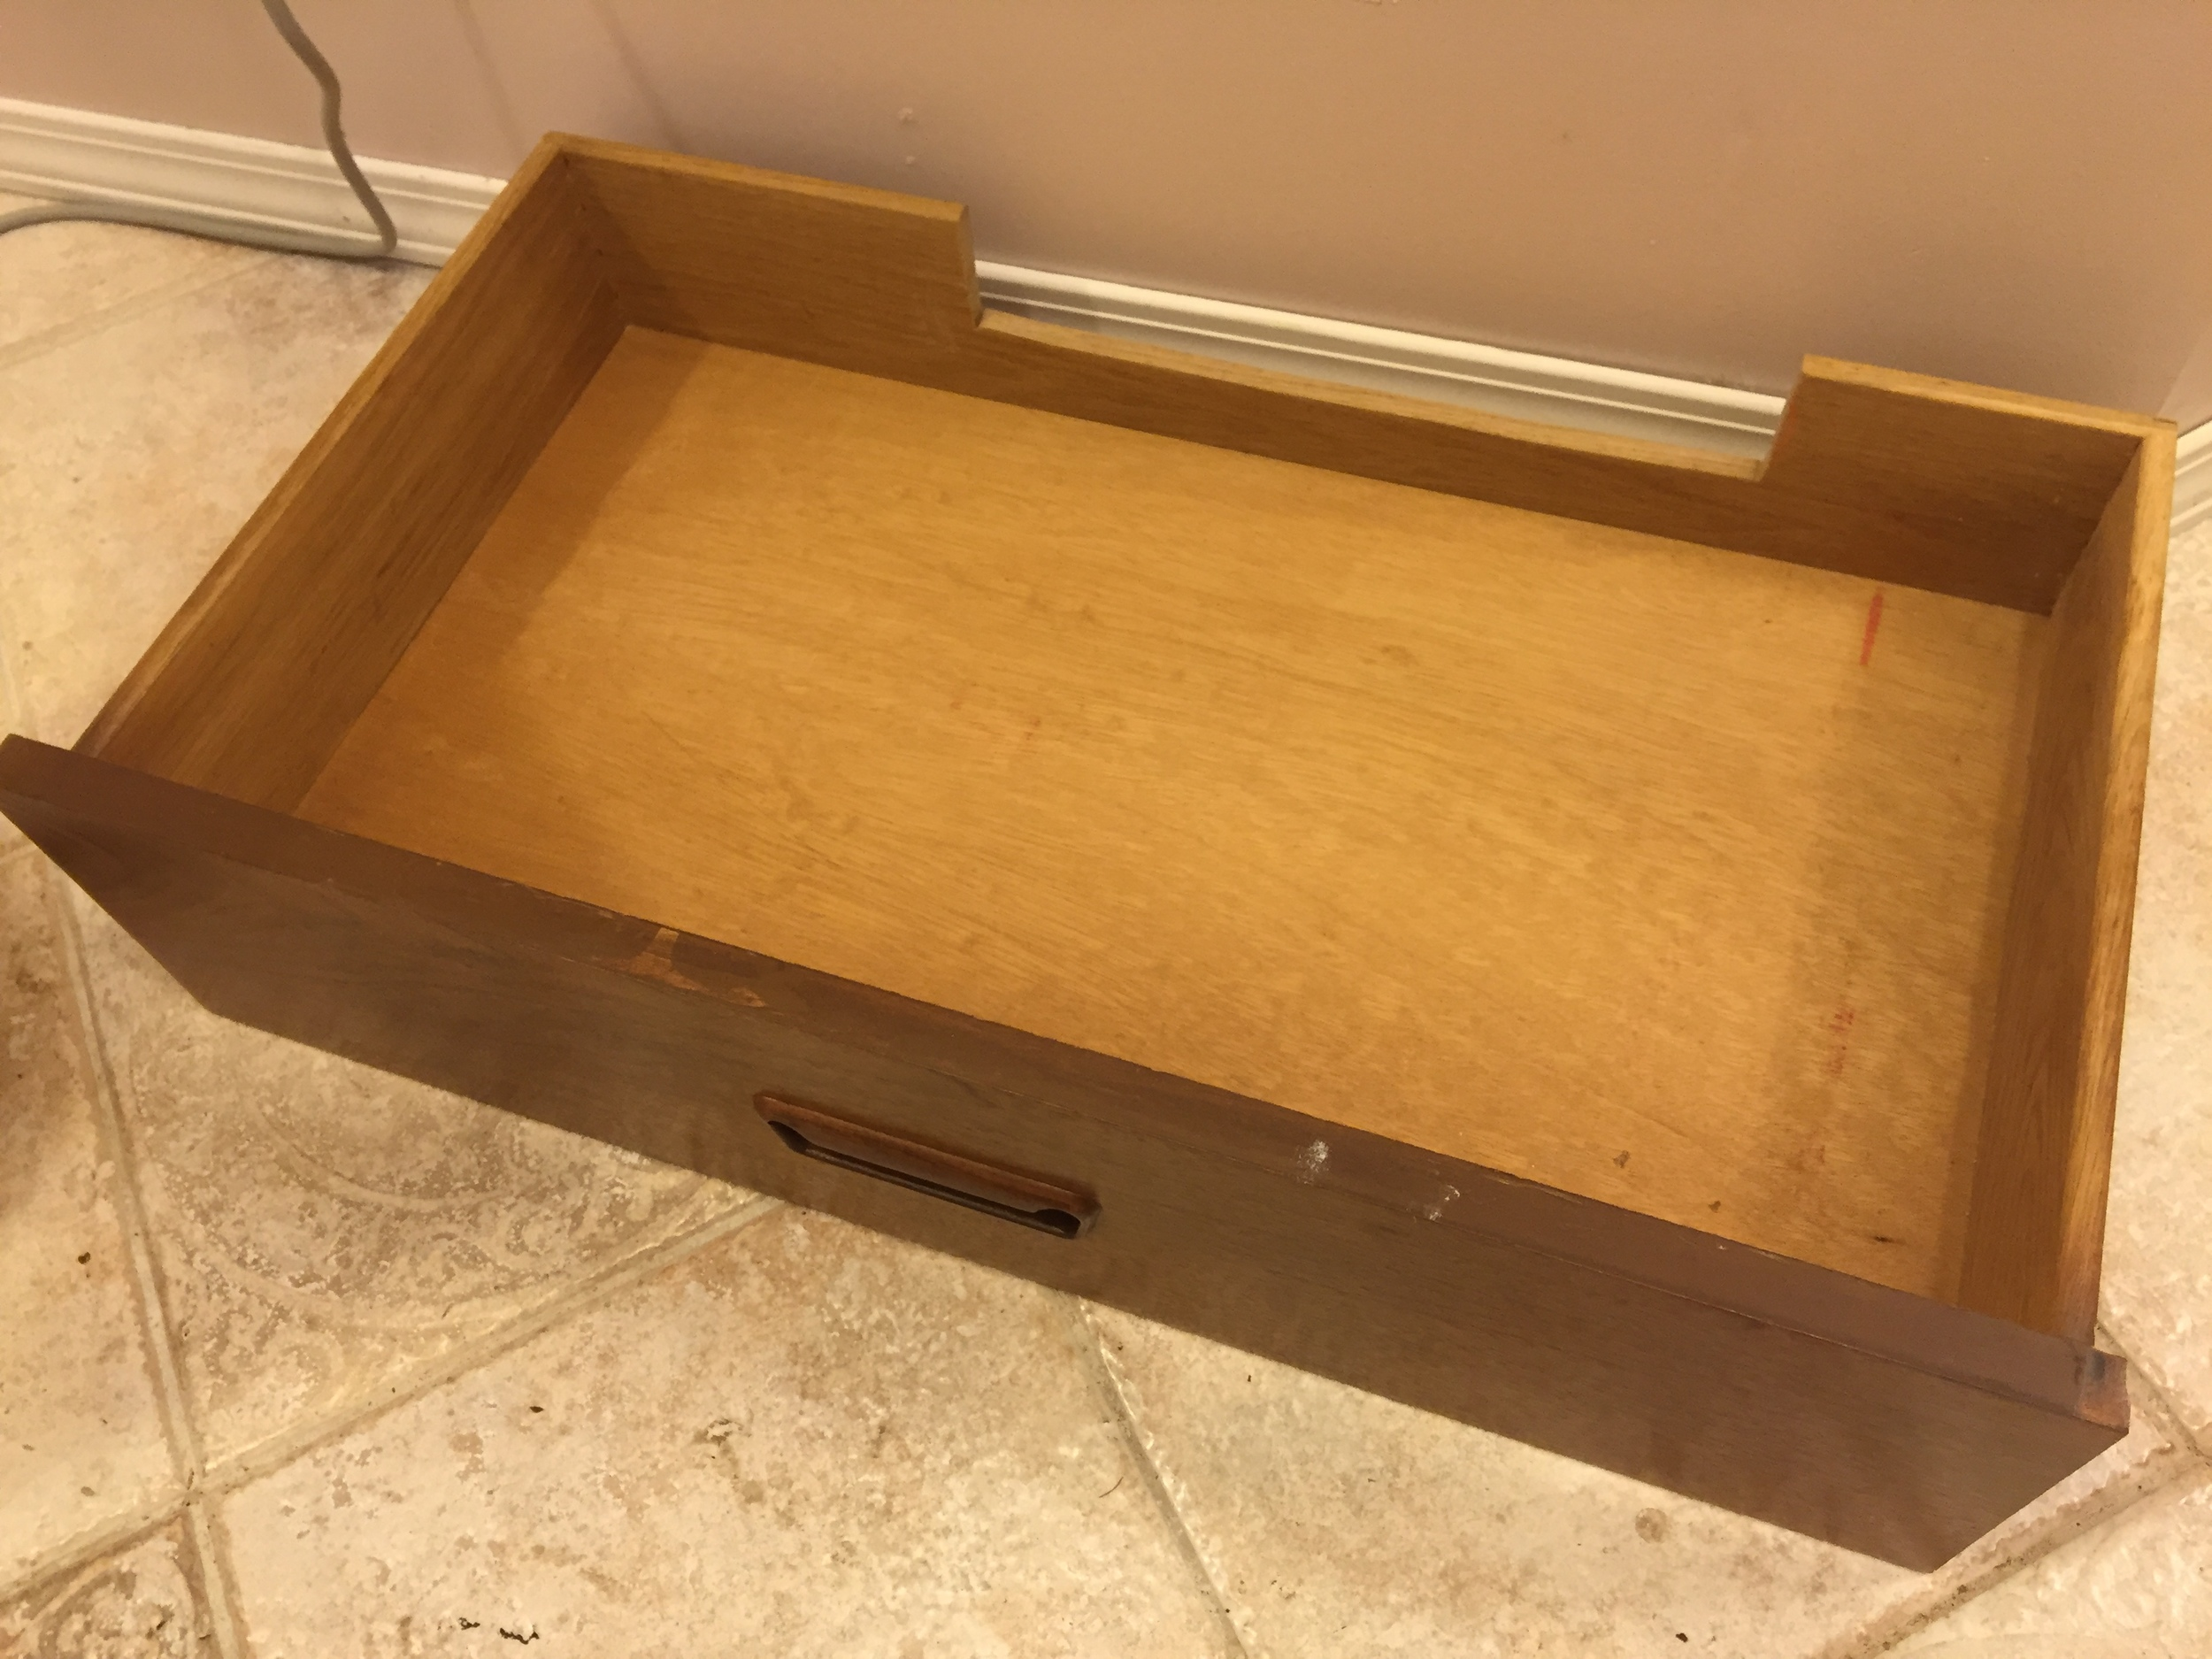 We had to cut a notch into the back of the bottom drawer to make room for the shut off valves.